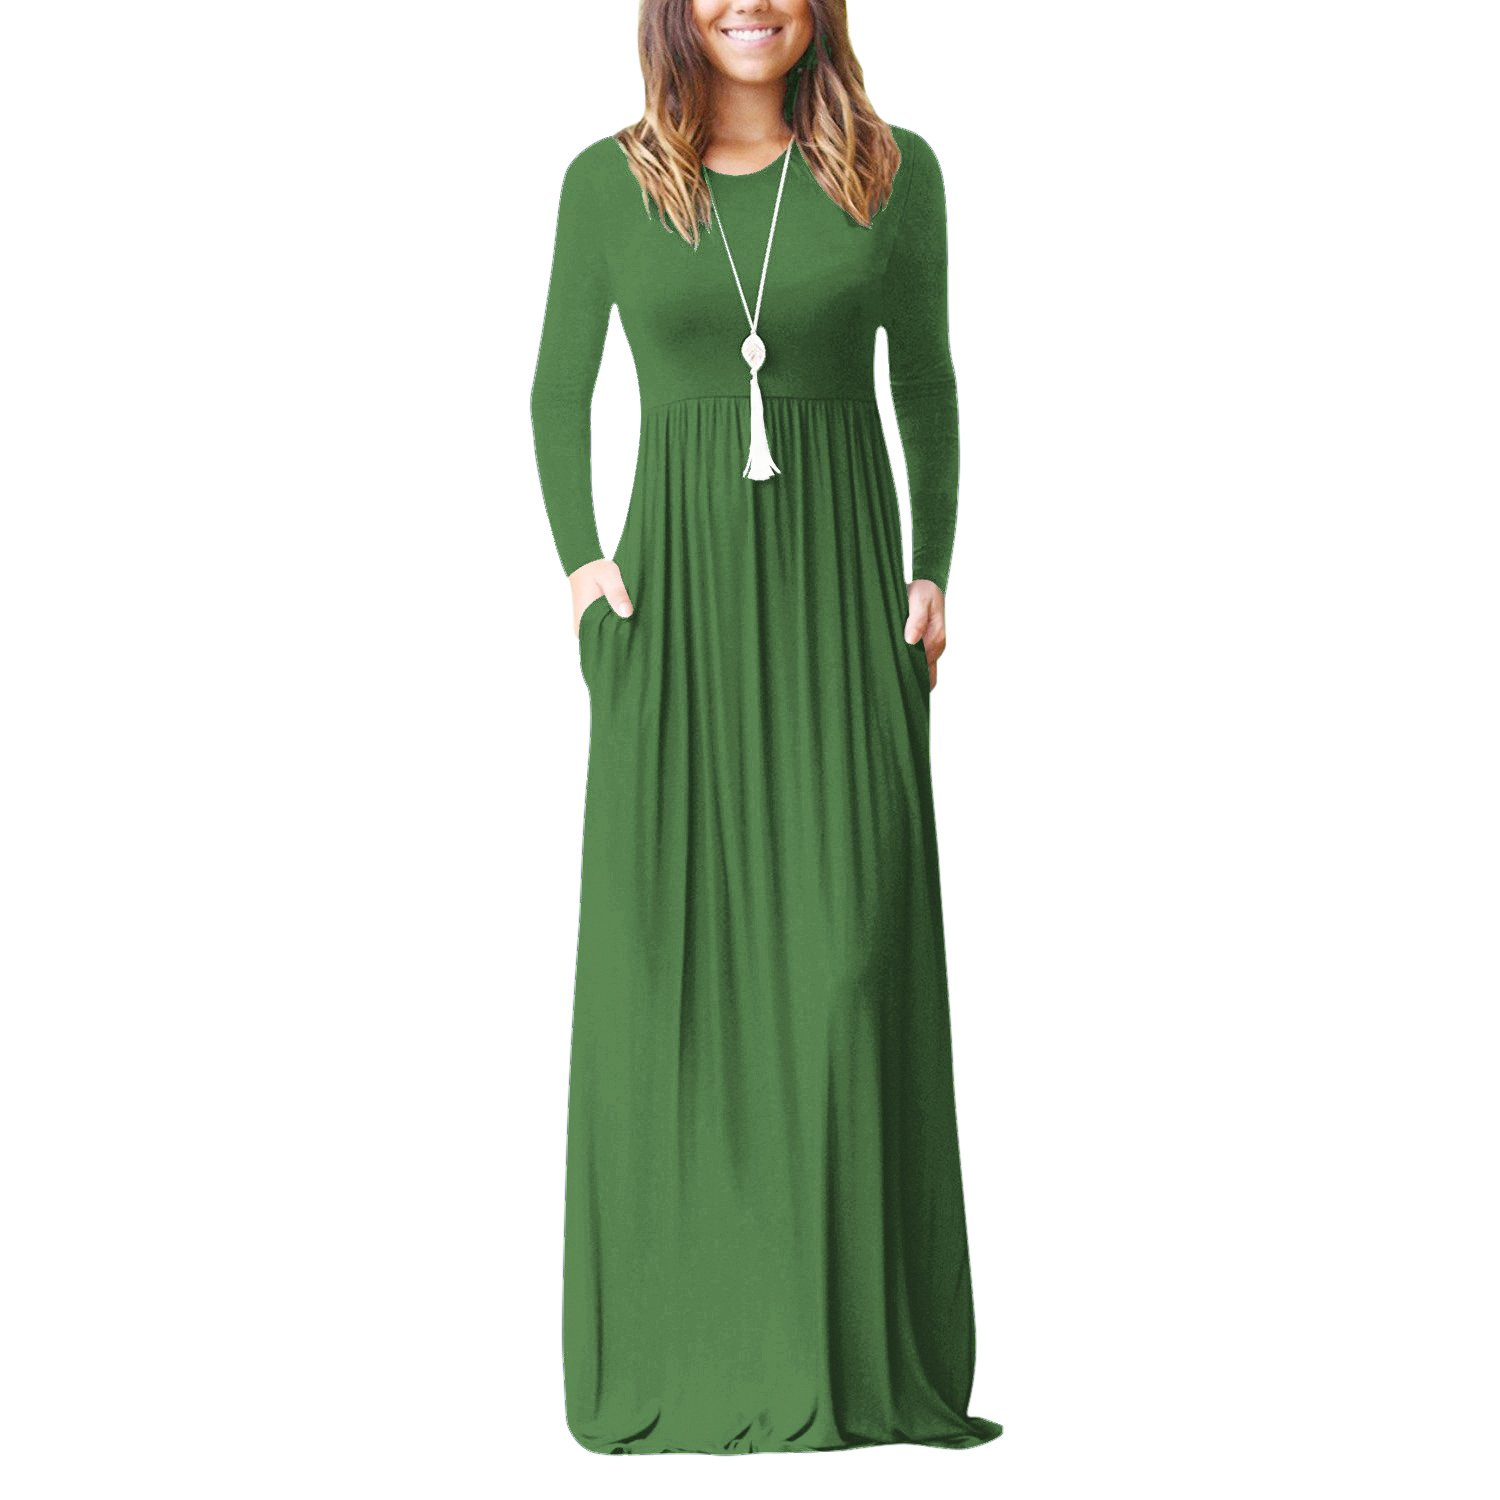 e19616cef71 Top 10 wholesale Spandex Maxi Dress - Chinabrands.com